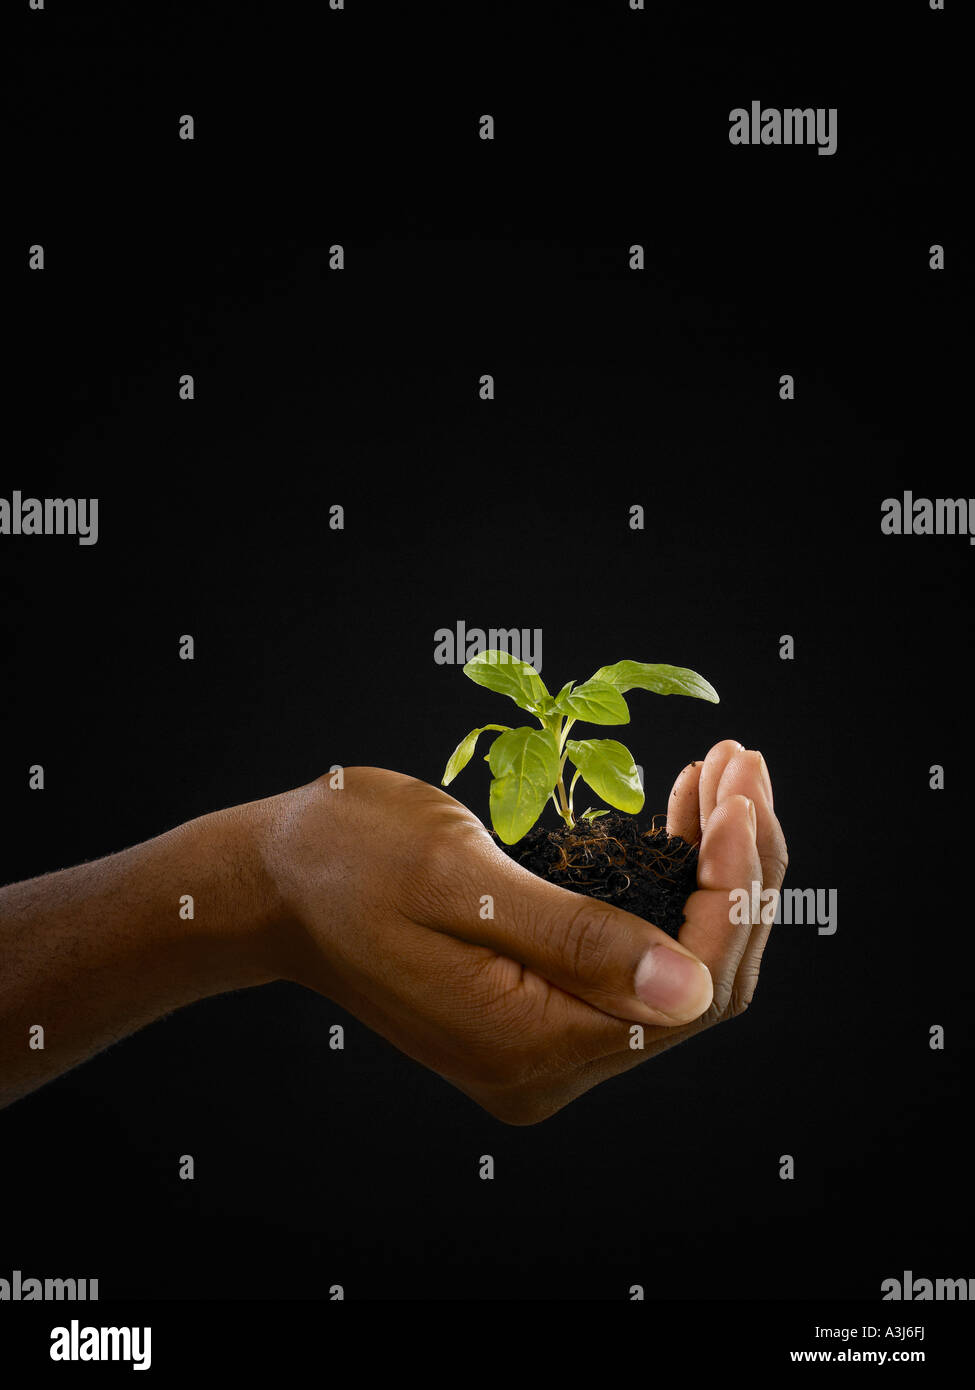 Person holding a seedling - Stock Image